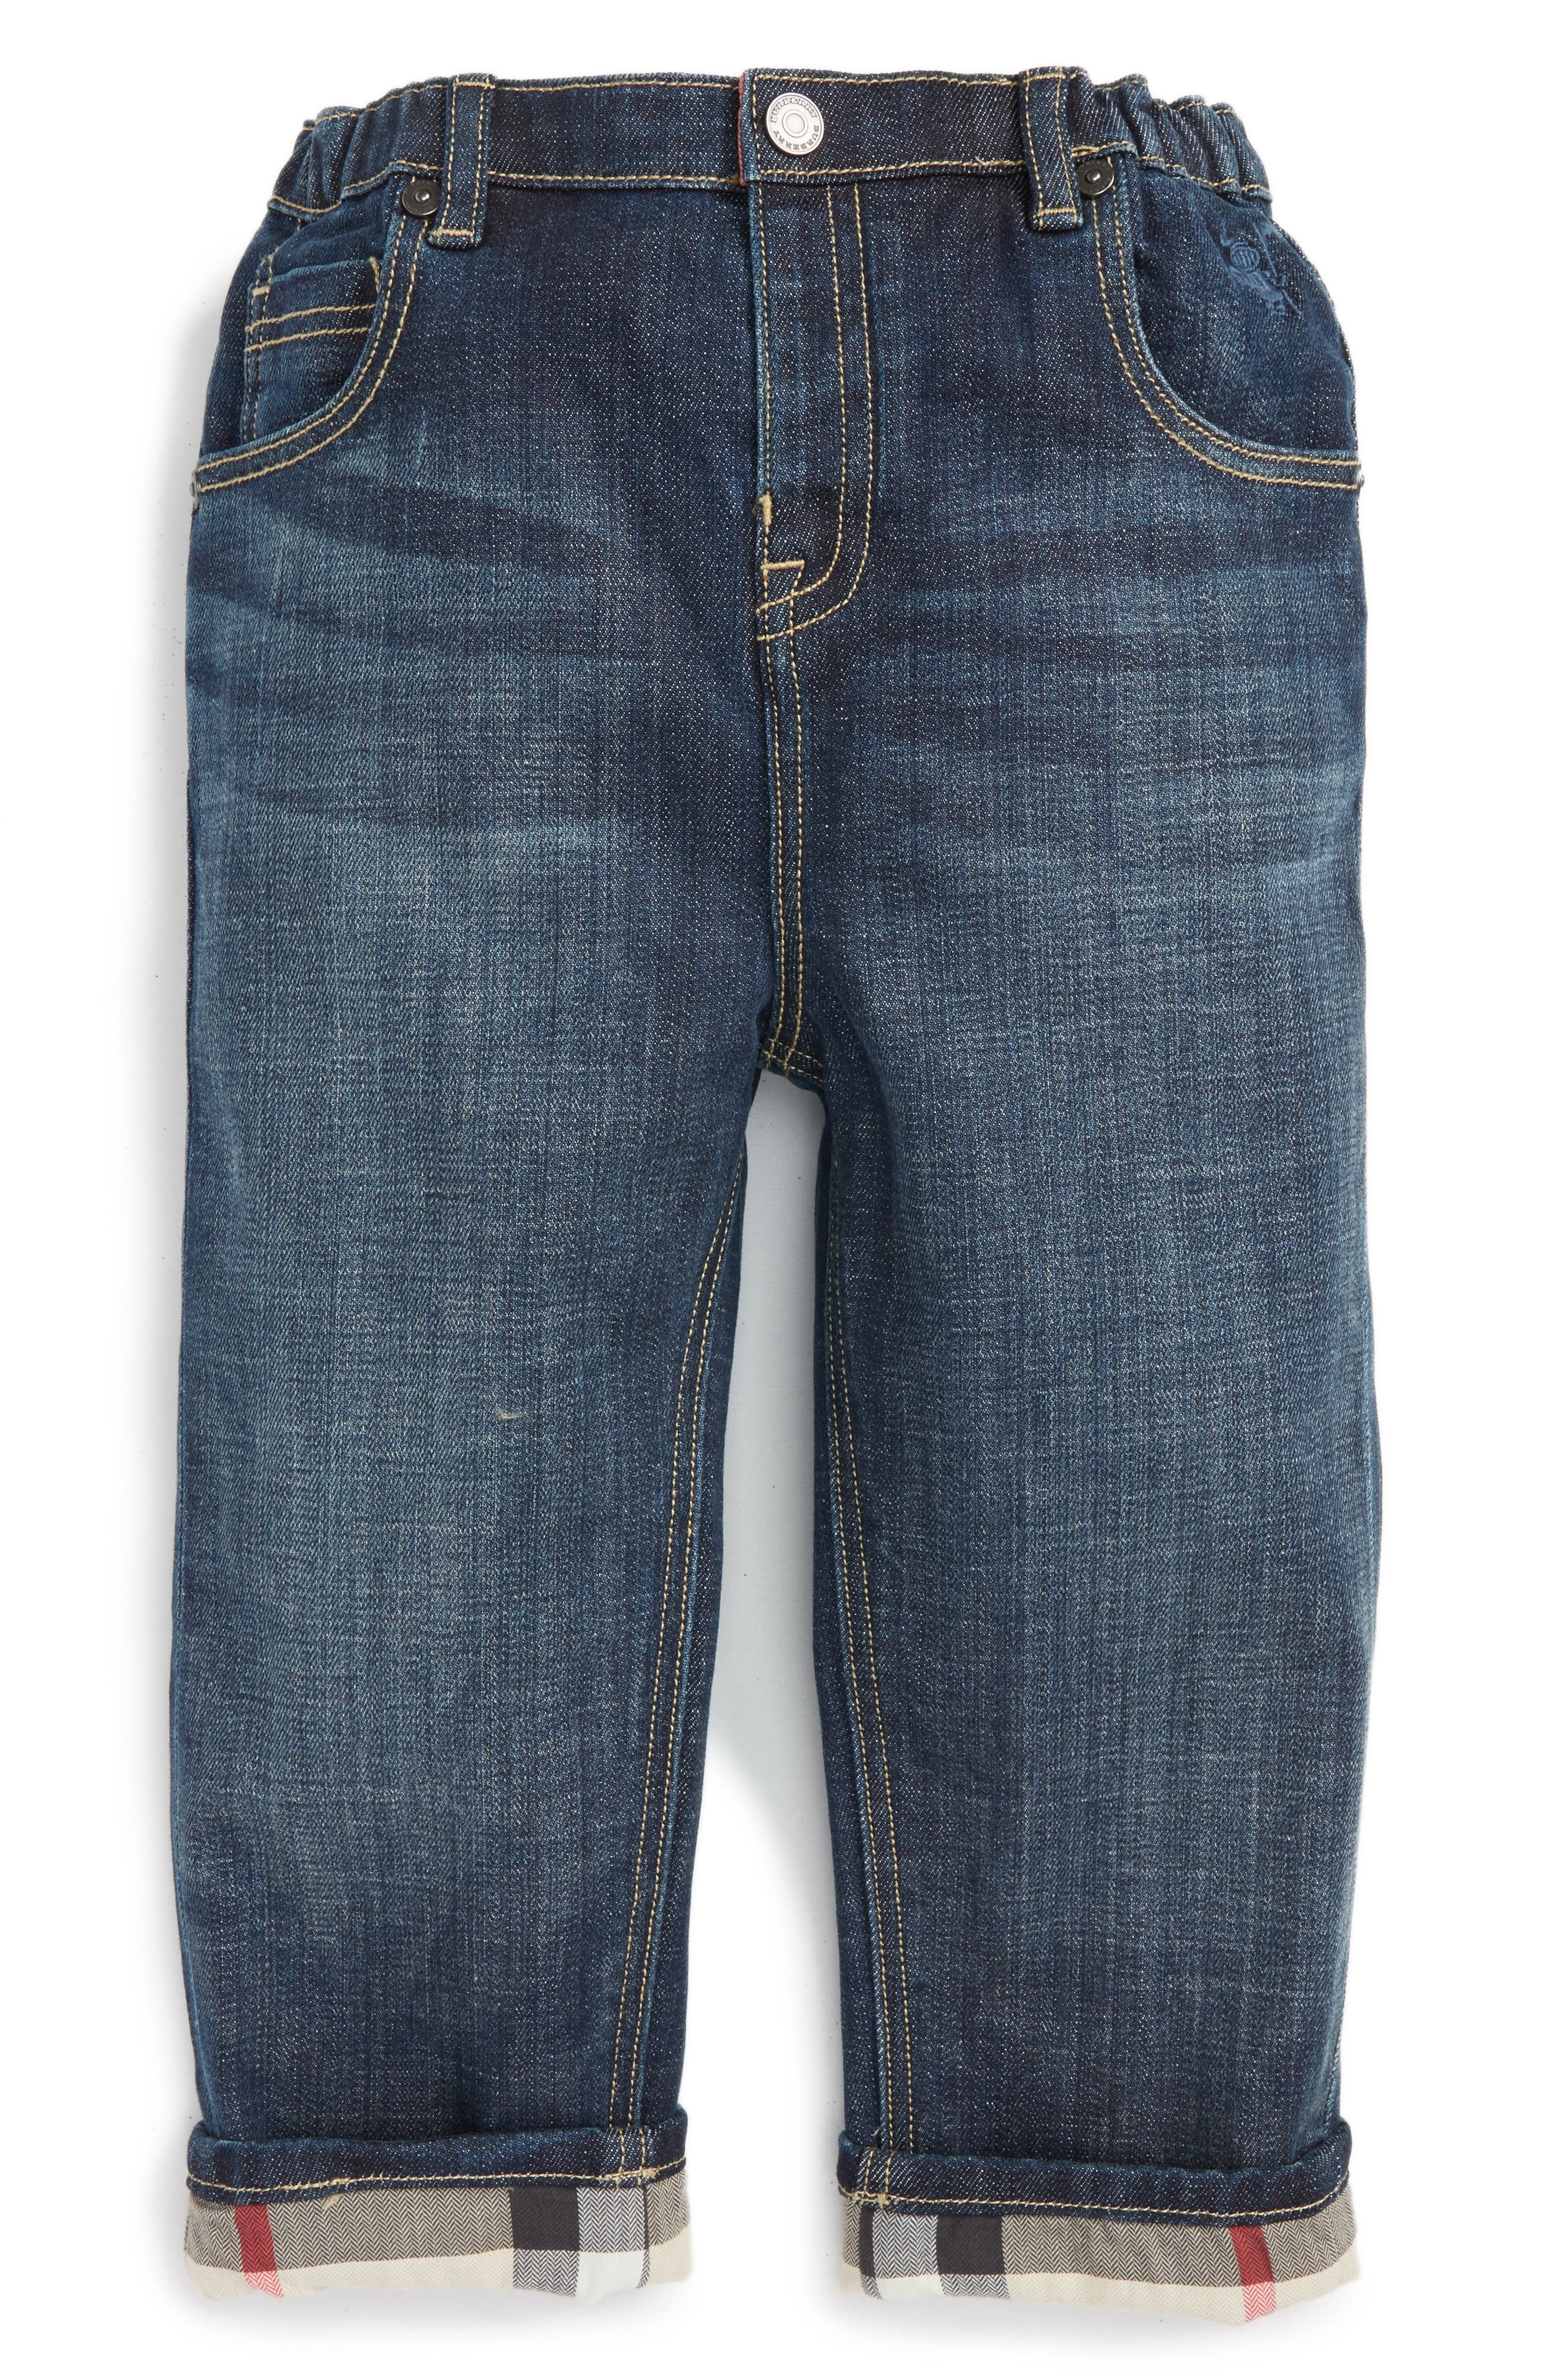 Burberry Pierre Straight Leg Jeans (Toddler Boys)